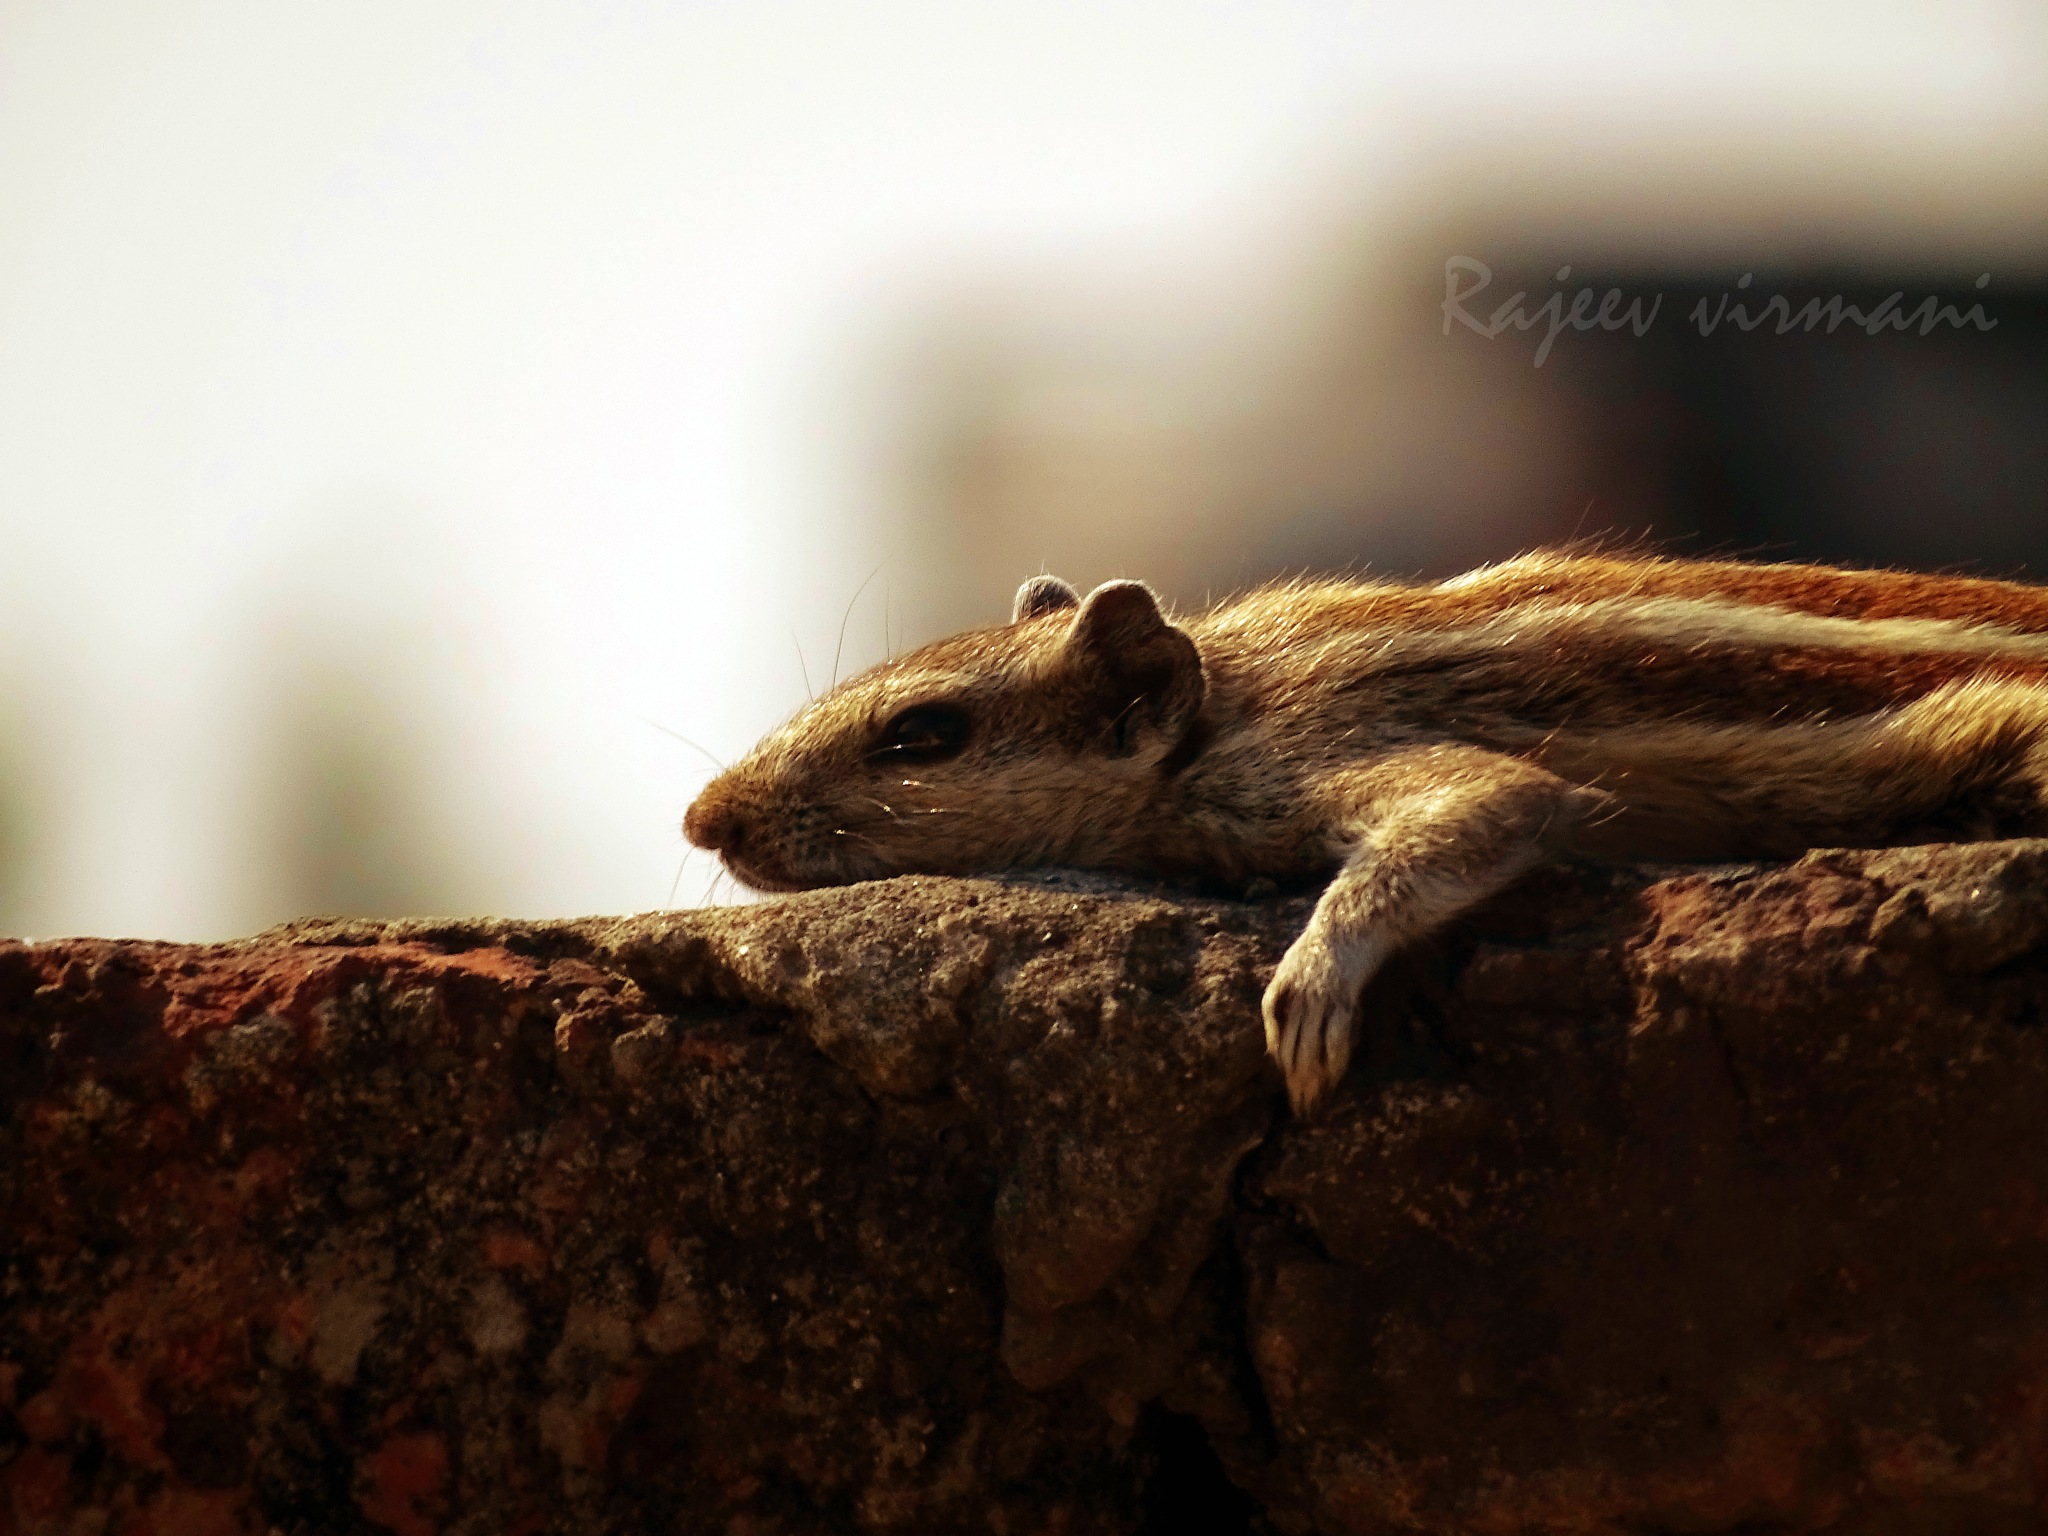 Resting by Rajeev